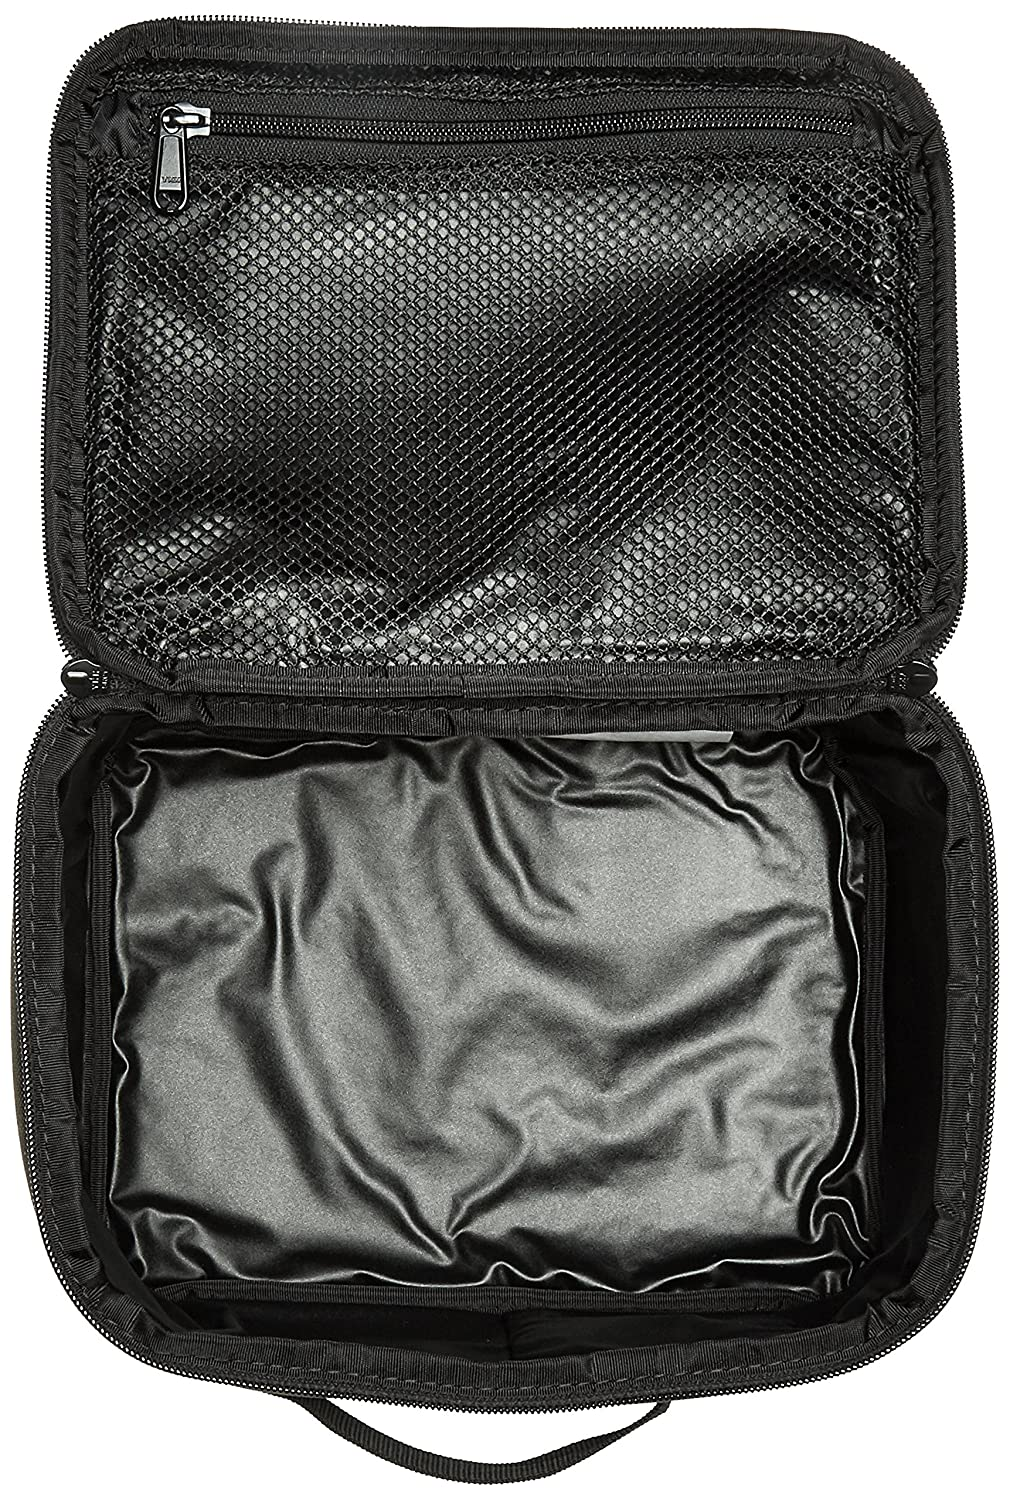 Amazon.com: Dakine Lunch Box: Sports & Outdoors